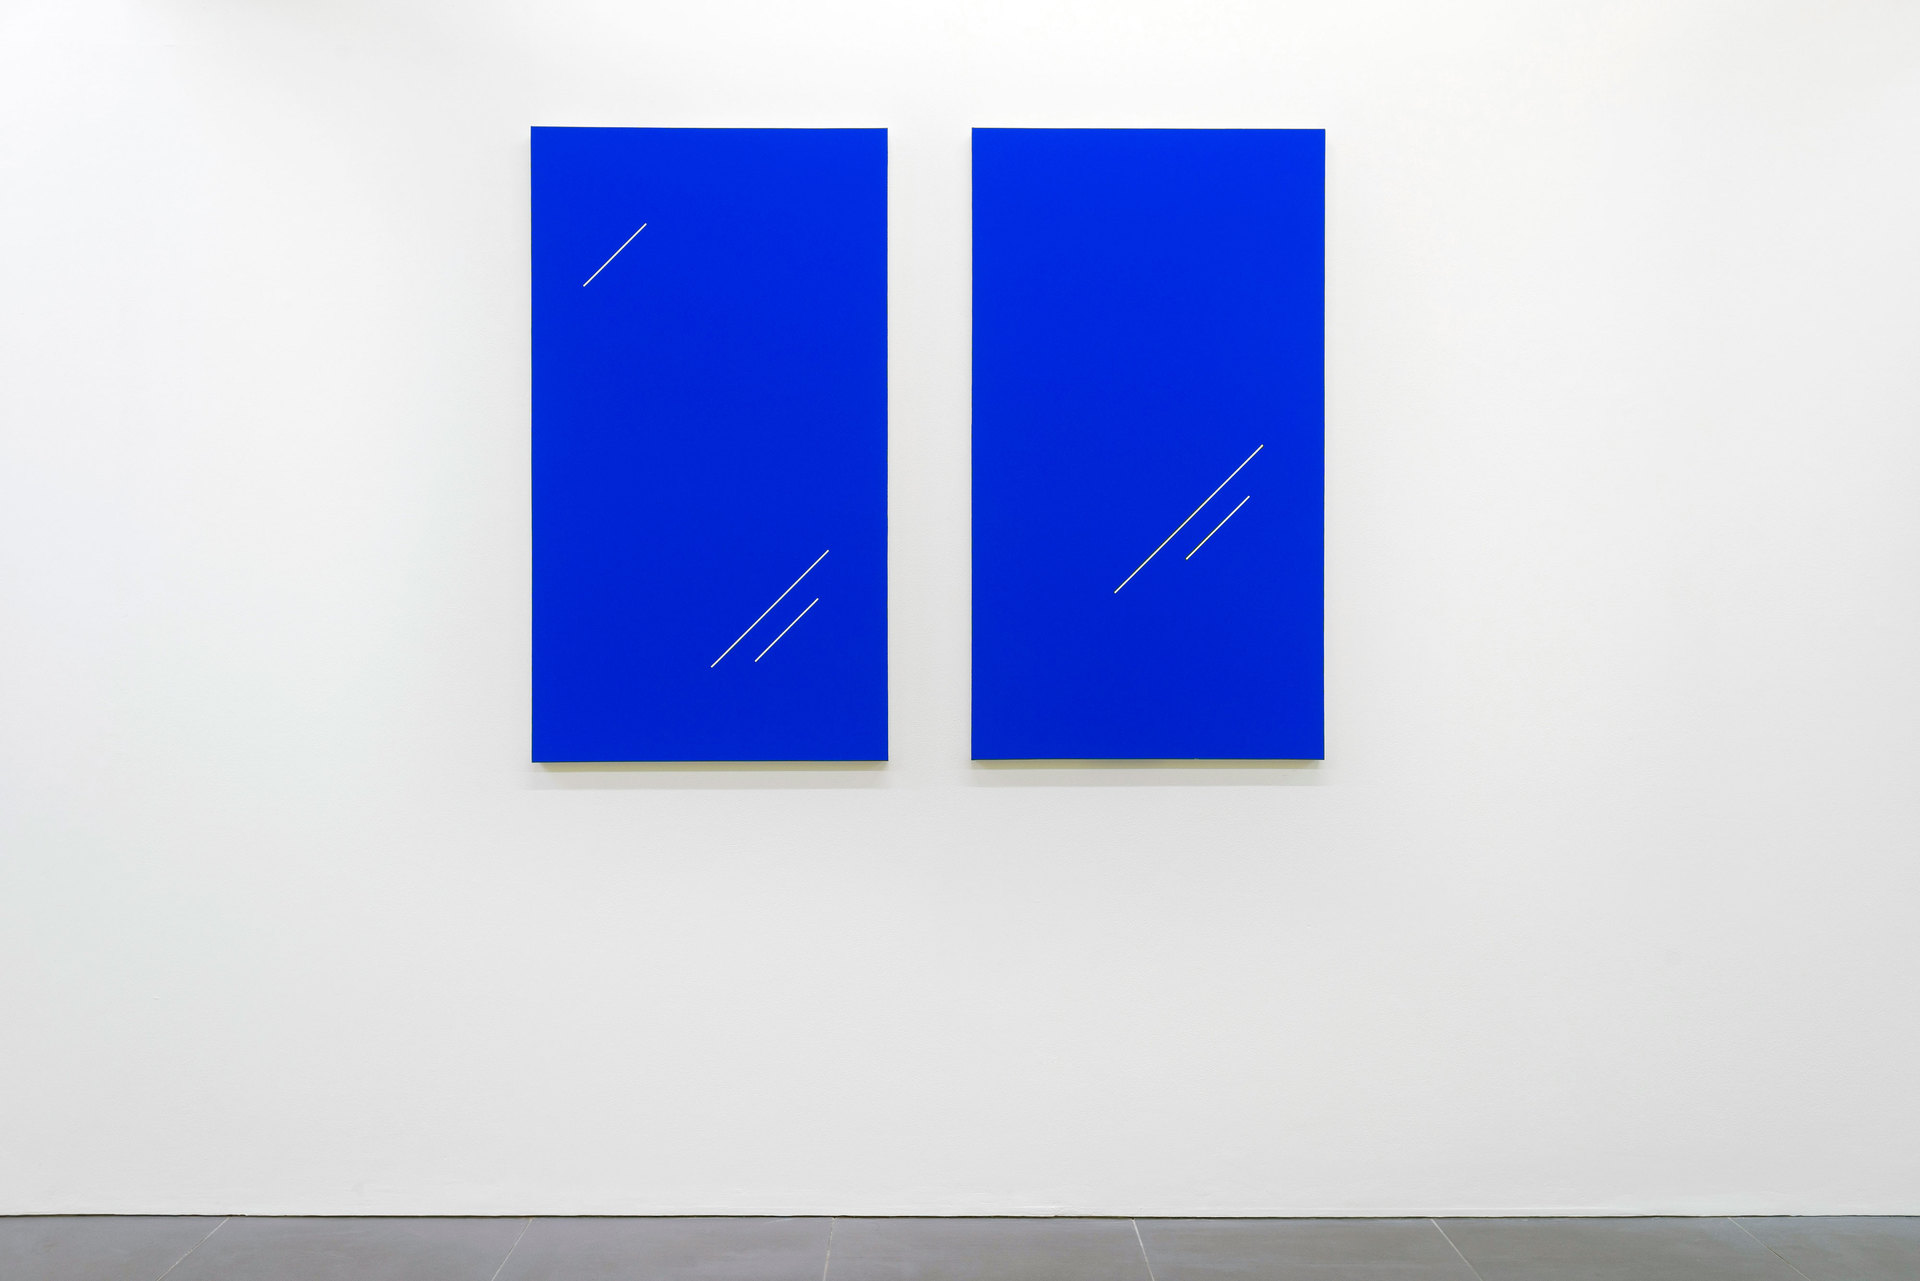 Paul Cowan, BCUASEE THE SKY IS BULE, 2013, Chroma-key blue paint on canvas, 127 cm x 72.4 cm, Cell Project Space